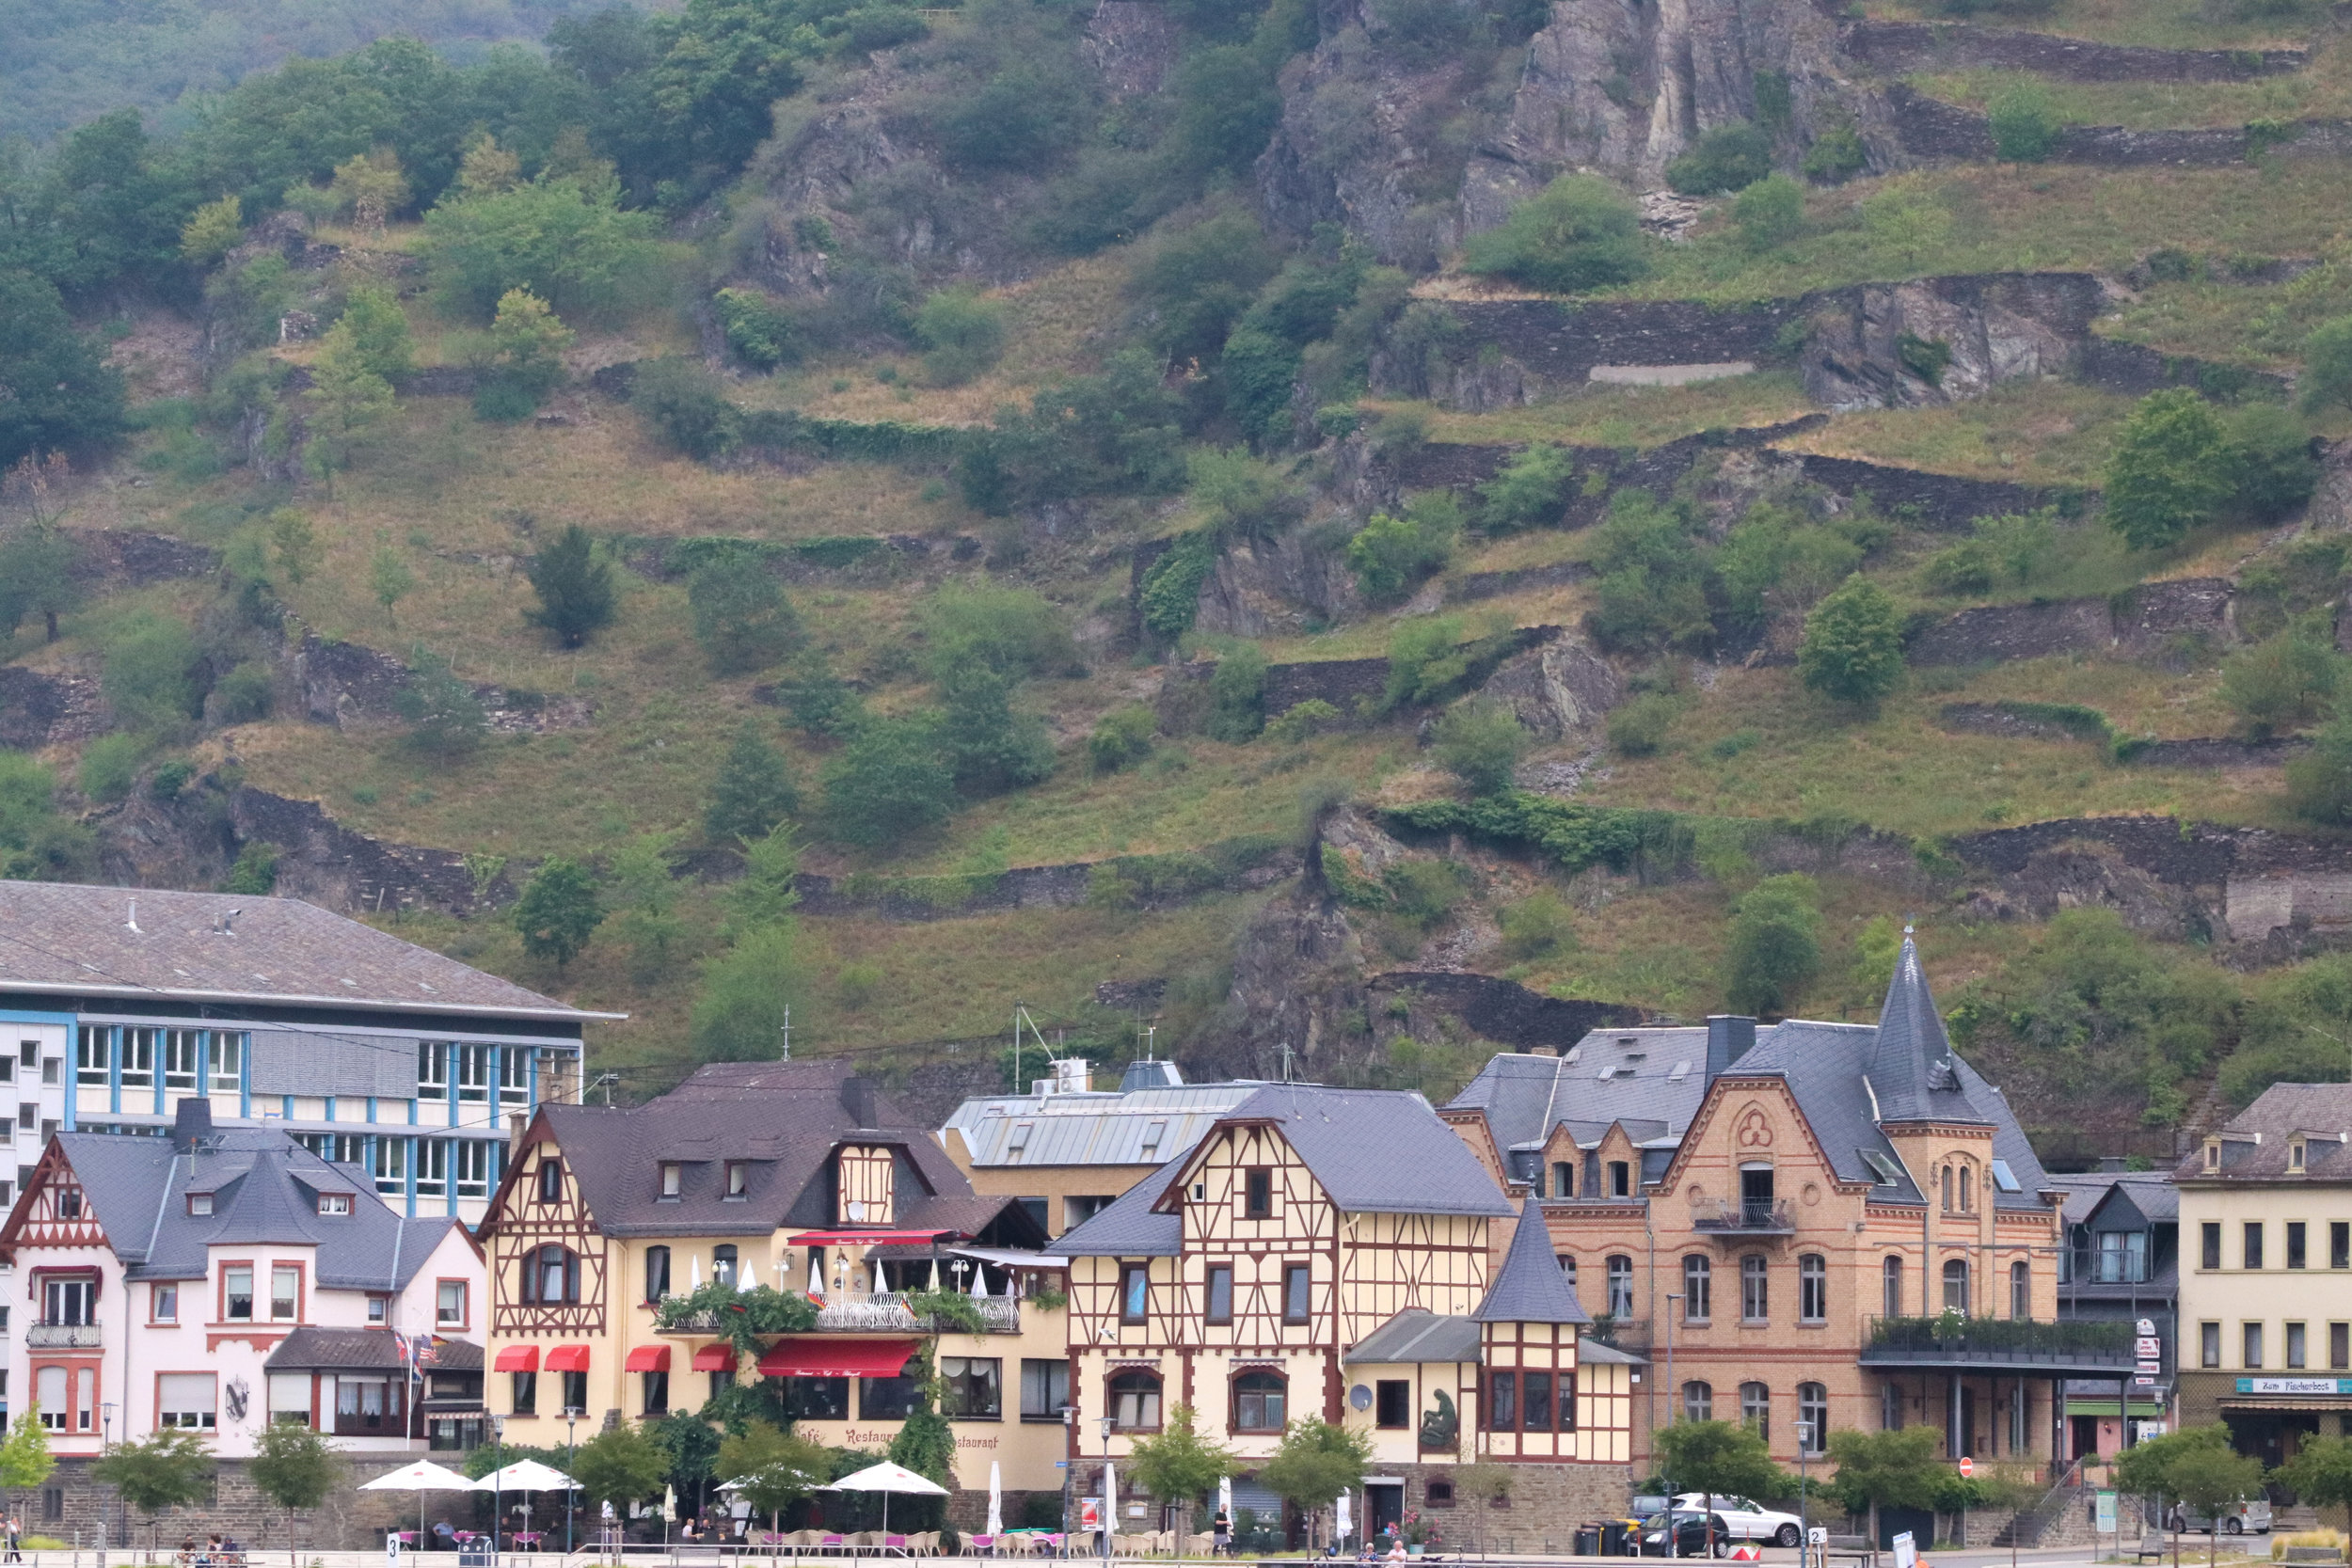 view of quaint German town from the Rhine river cruise